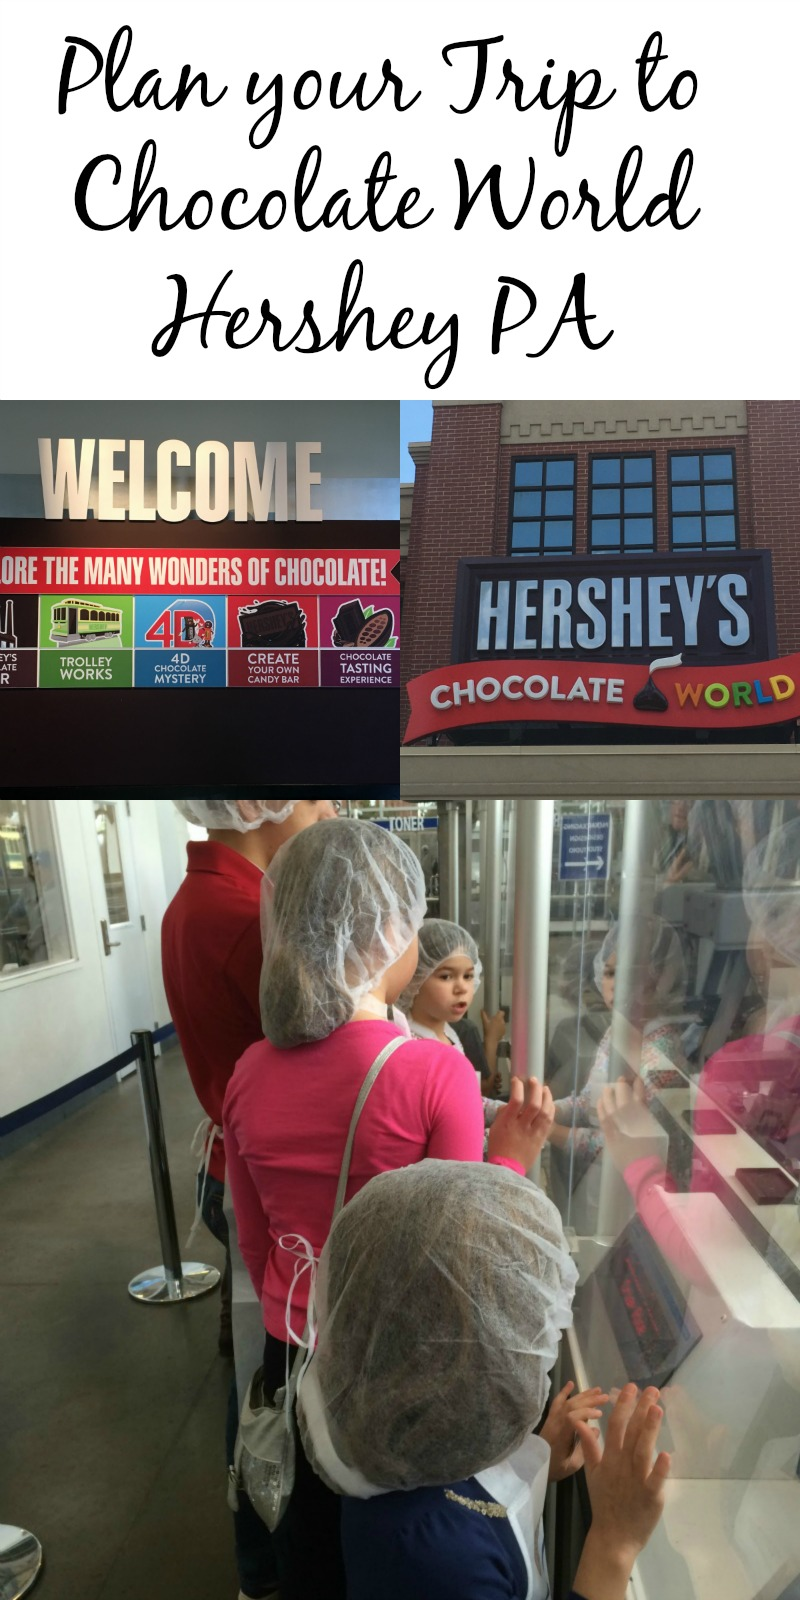 Plan your trip to Chocolate World in Hershey PA #SweetestMoms #HersheyPa #ad